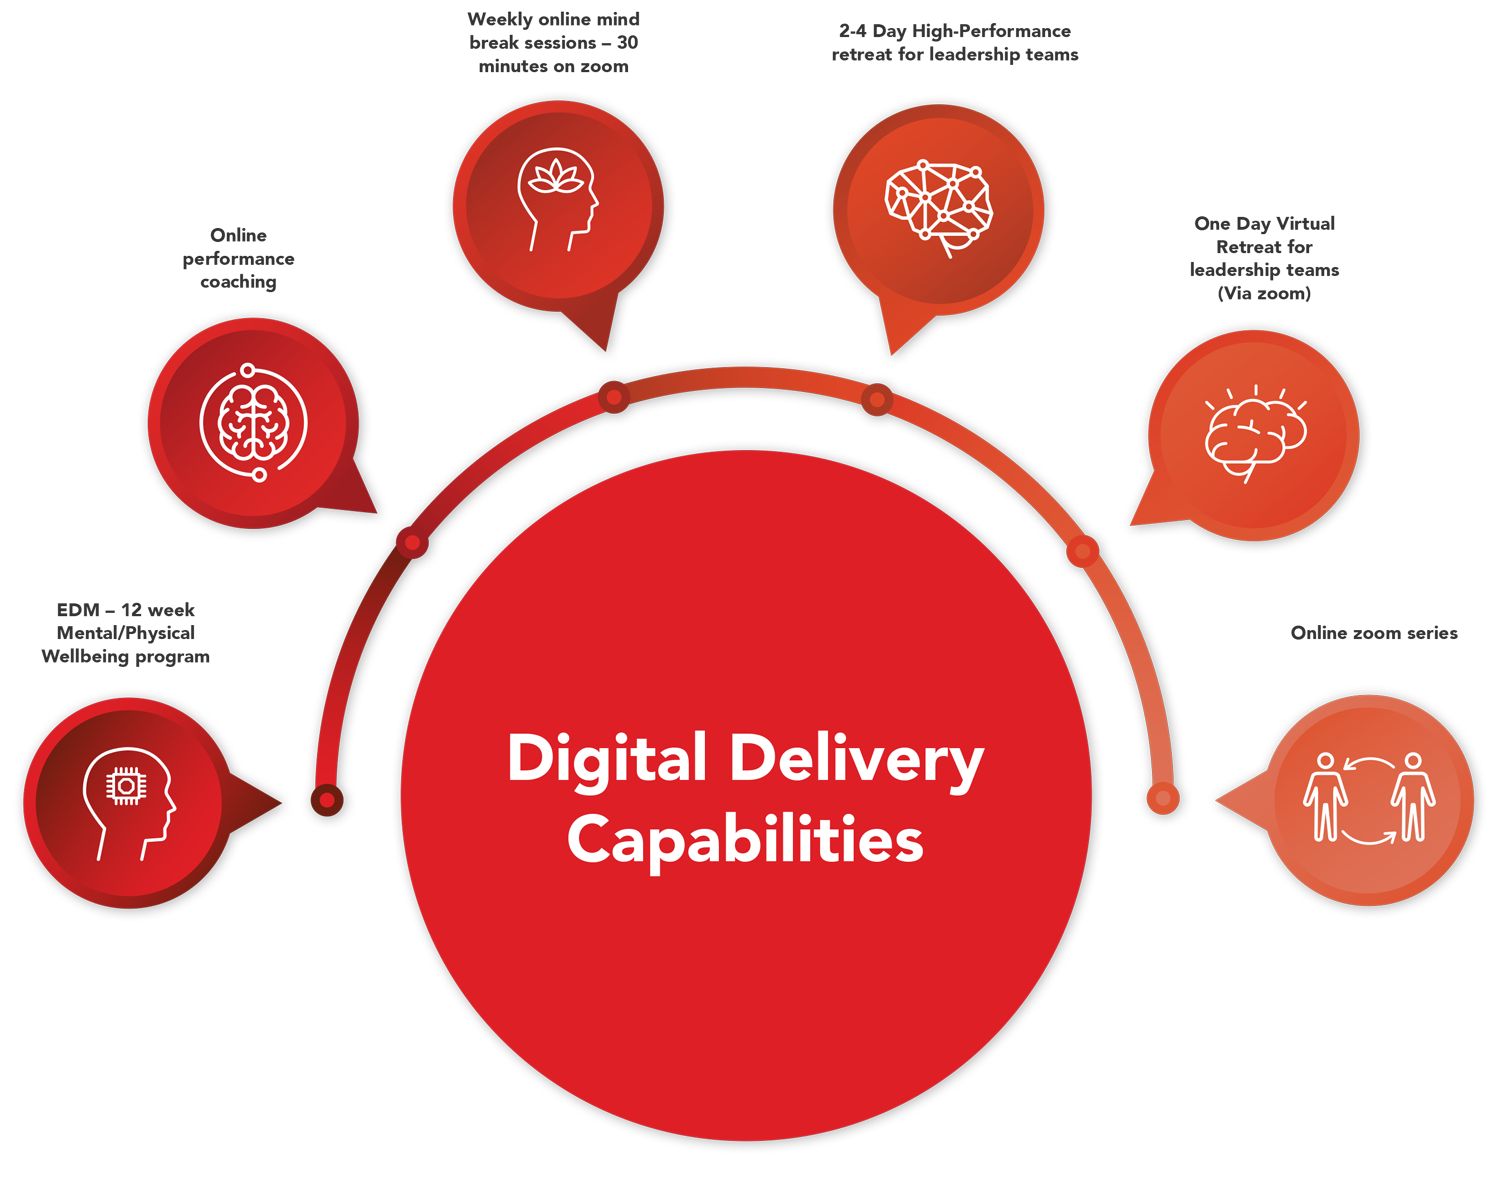 Digital delivery capabilities